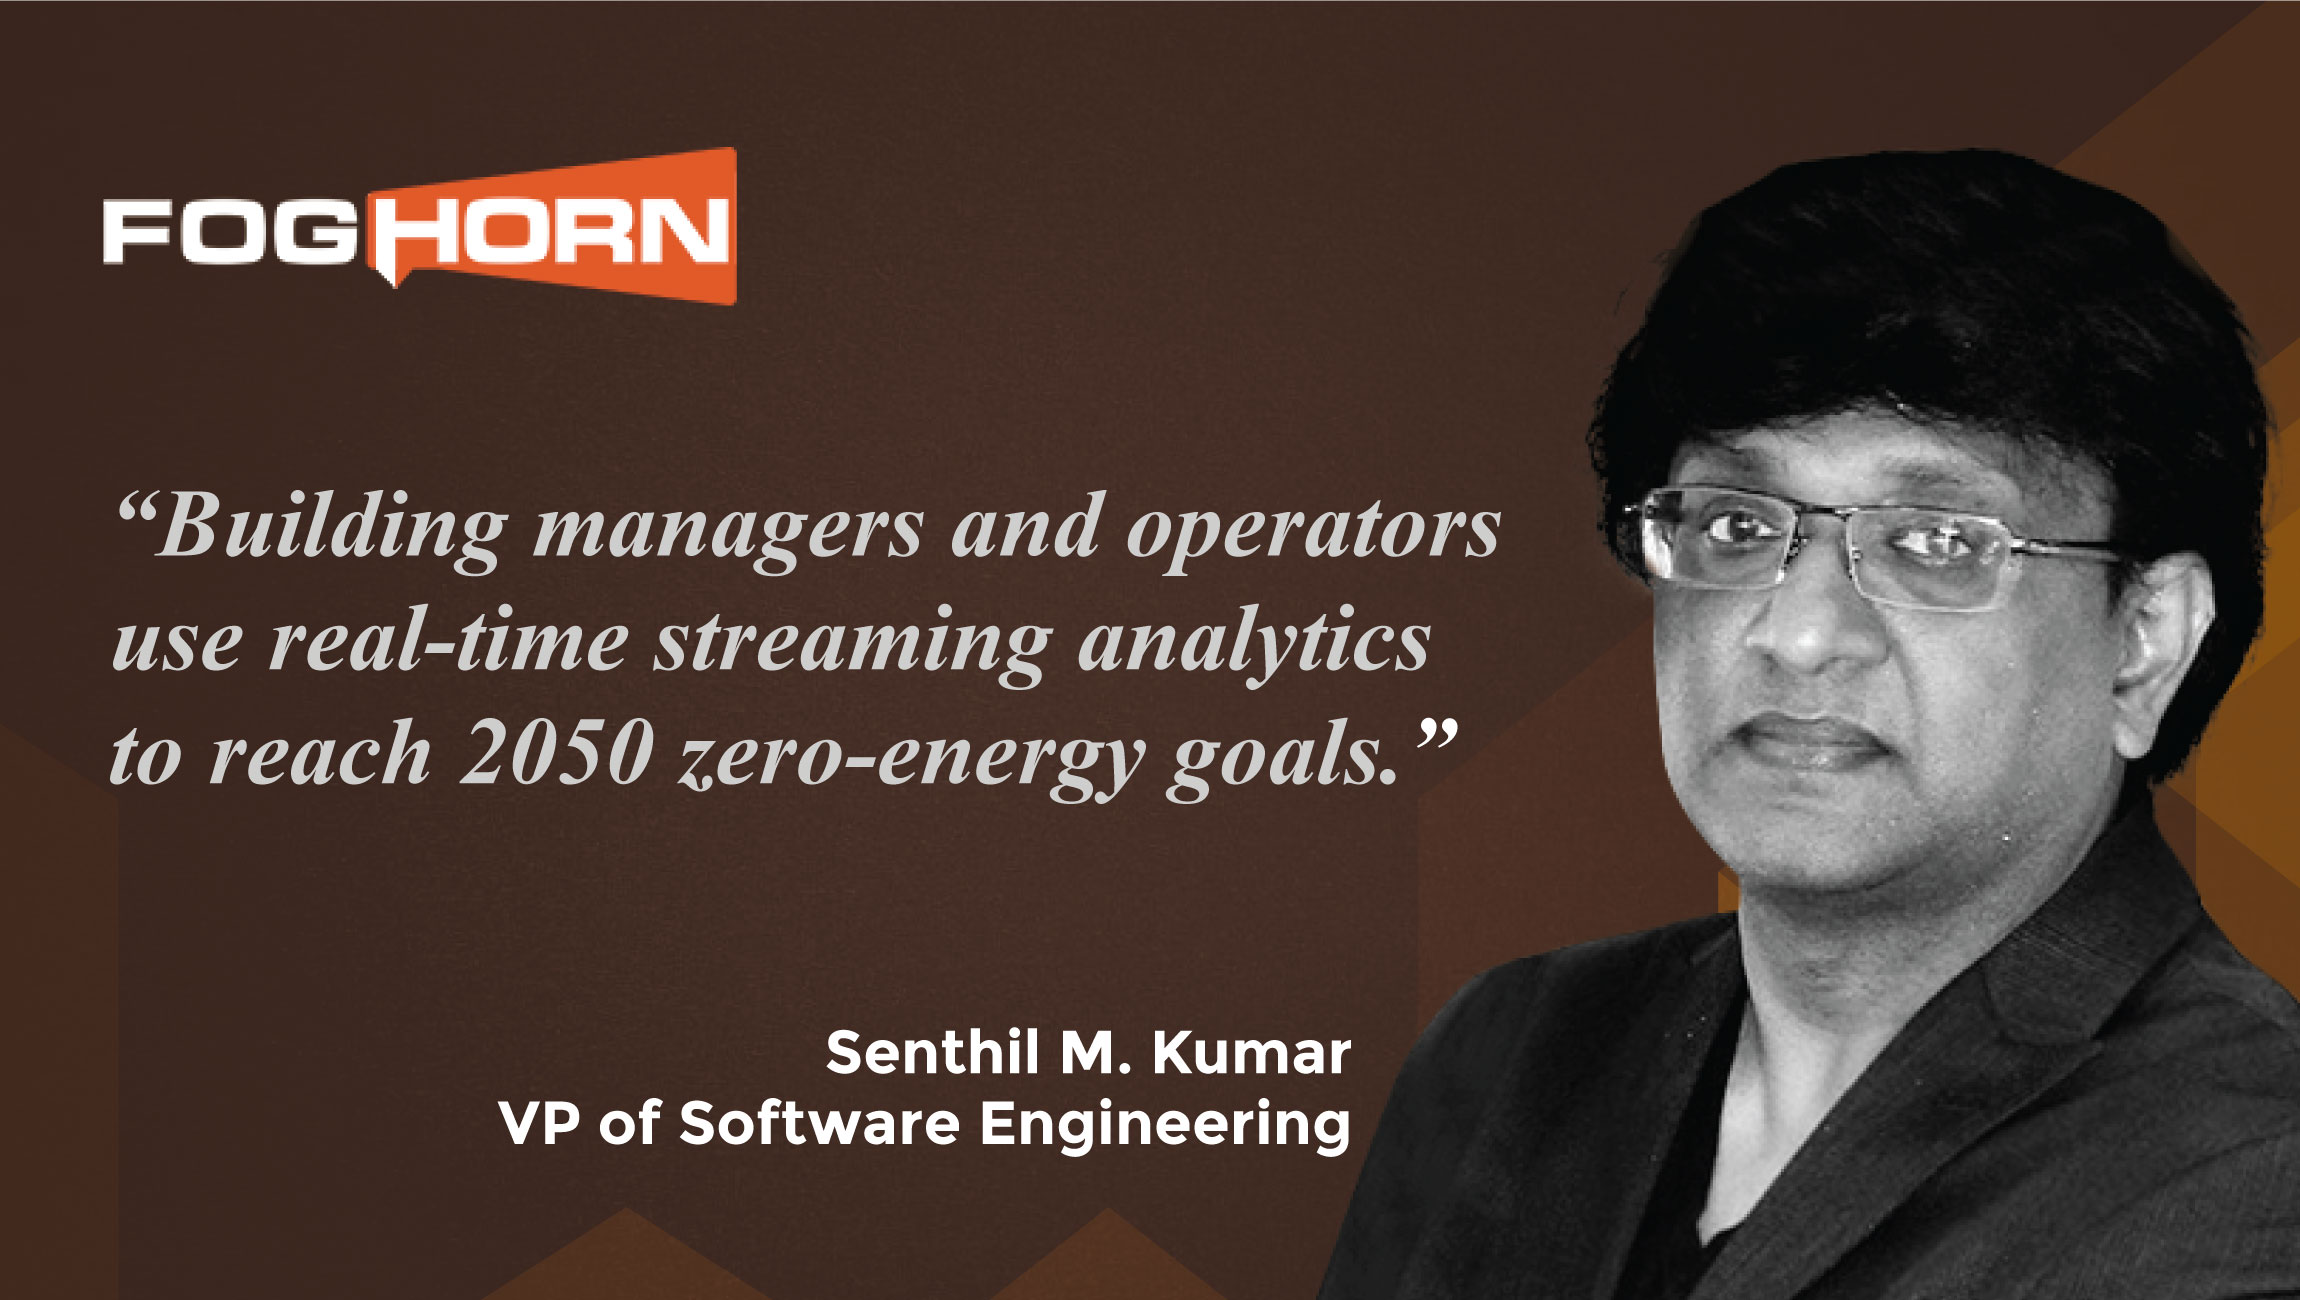 Predictions Series: Interview with Senthil Kumar, VP of Software Engineering at FogHorn